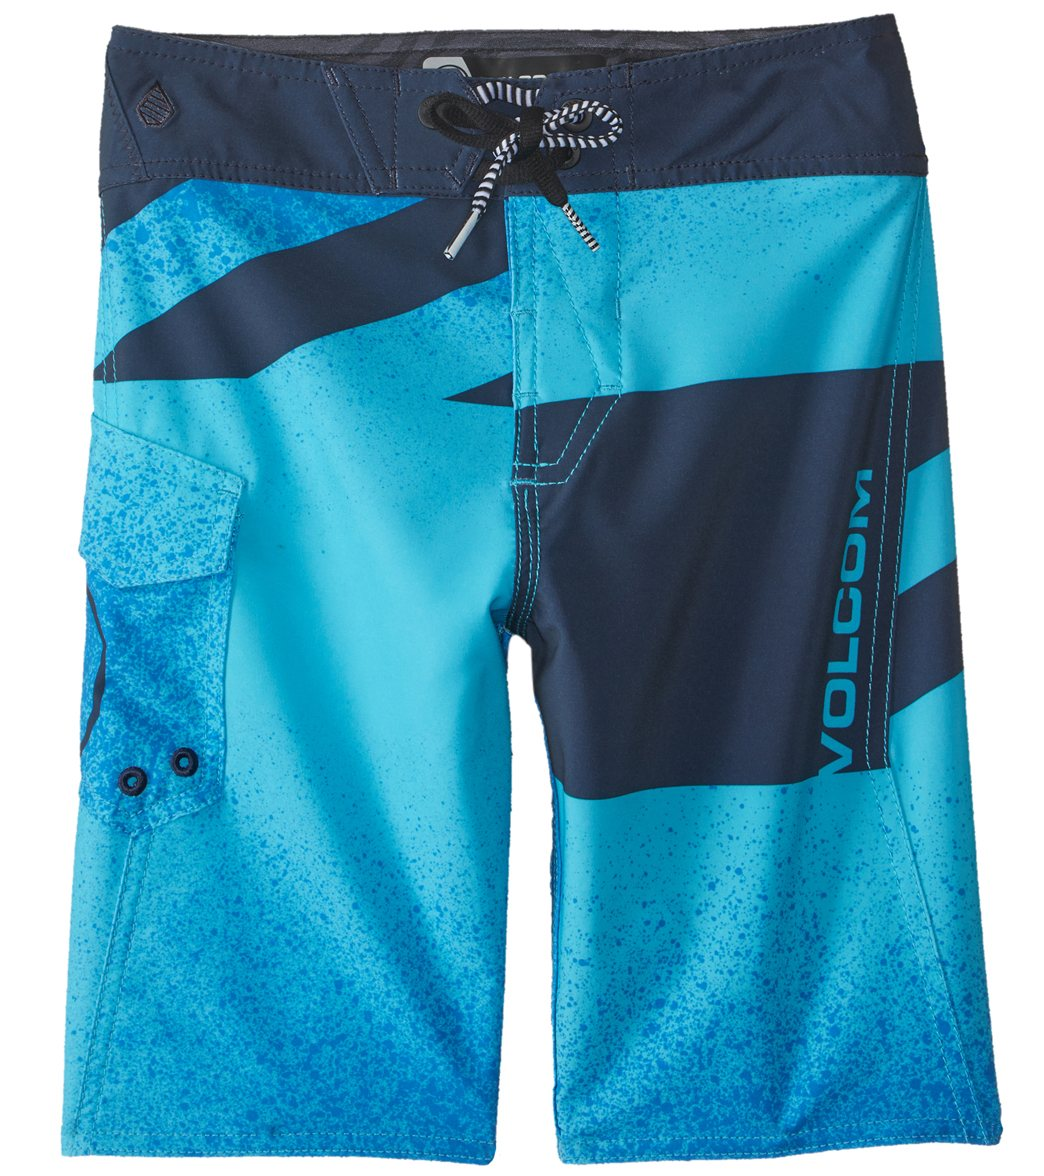 c39ae44c87 Volcom Boy's Logo Party Pack Mod Boardshort (8-20) at SwimOutlet.com